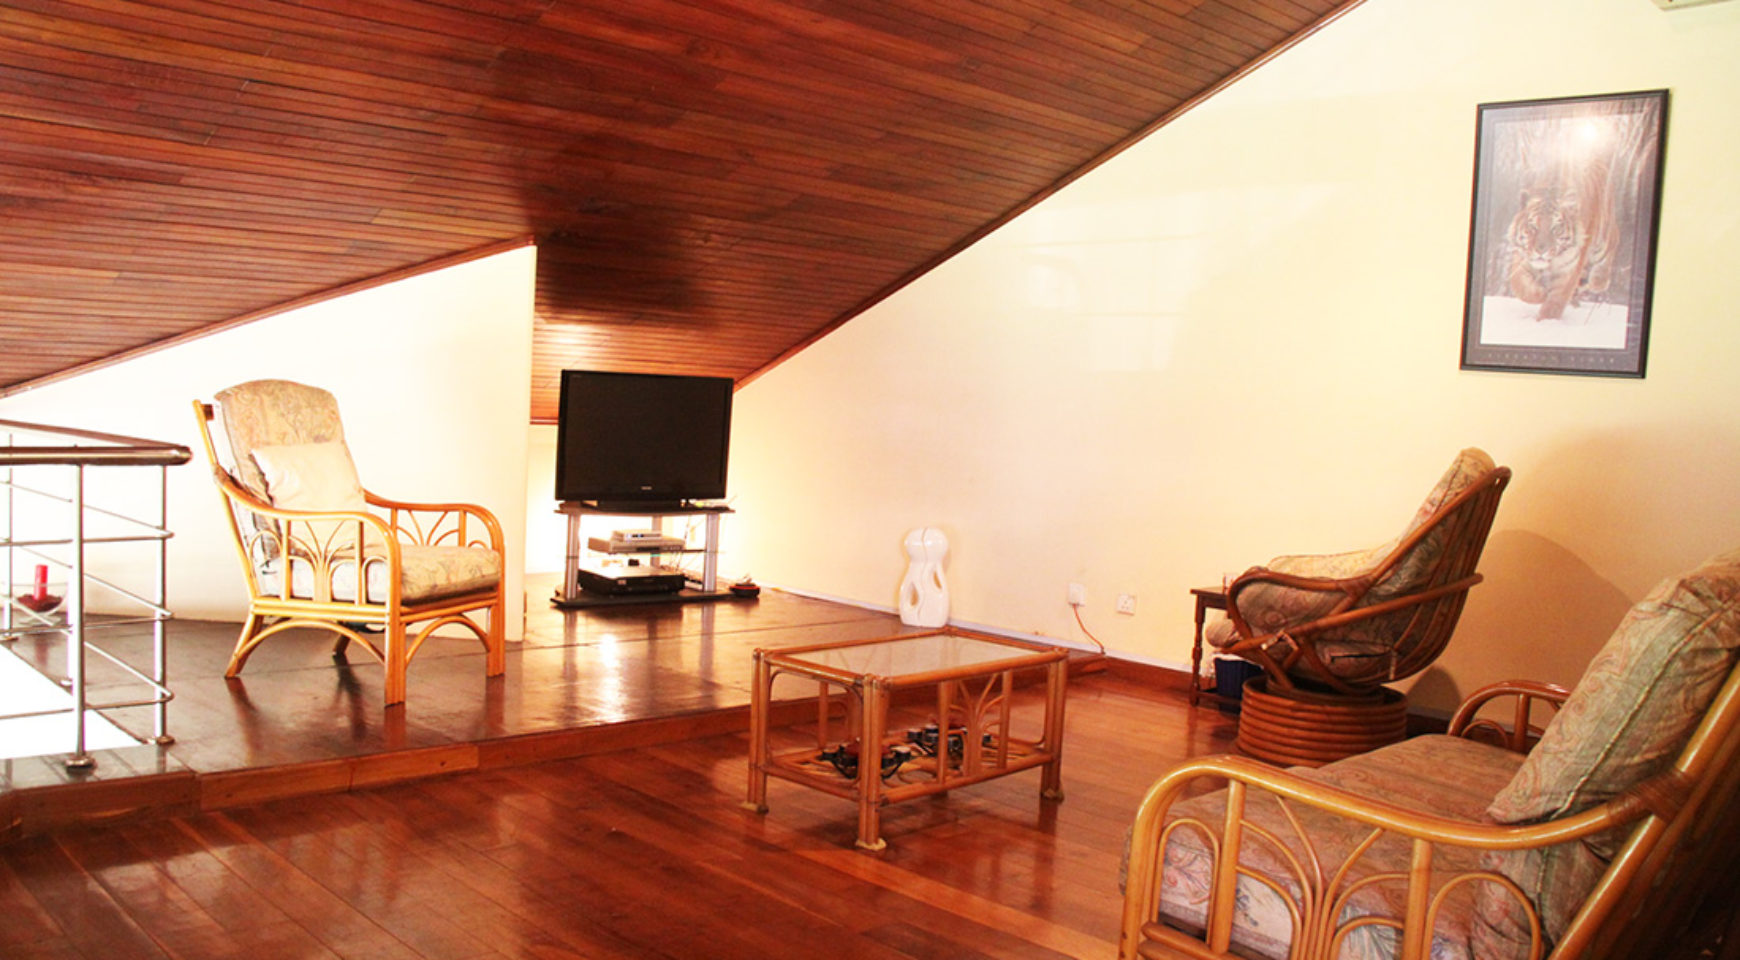 Luxury penthouse apartment for sale ceylon estate agents for Penthouse apartment for sale